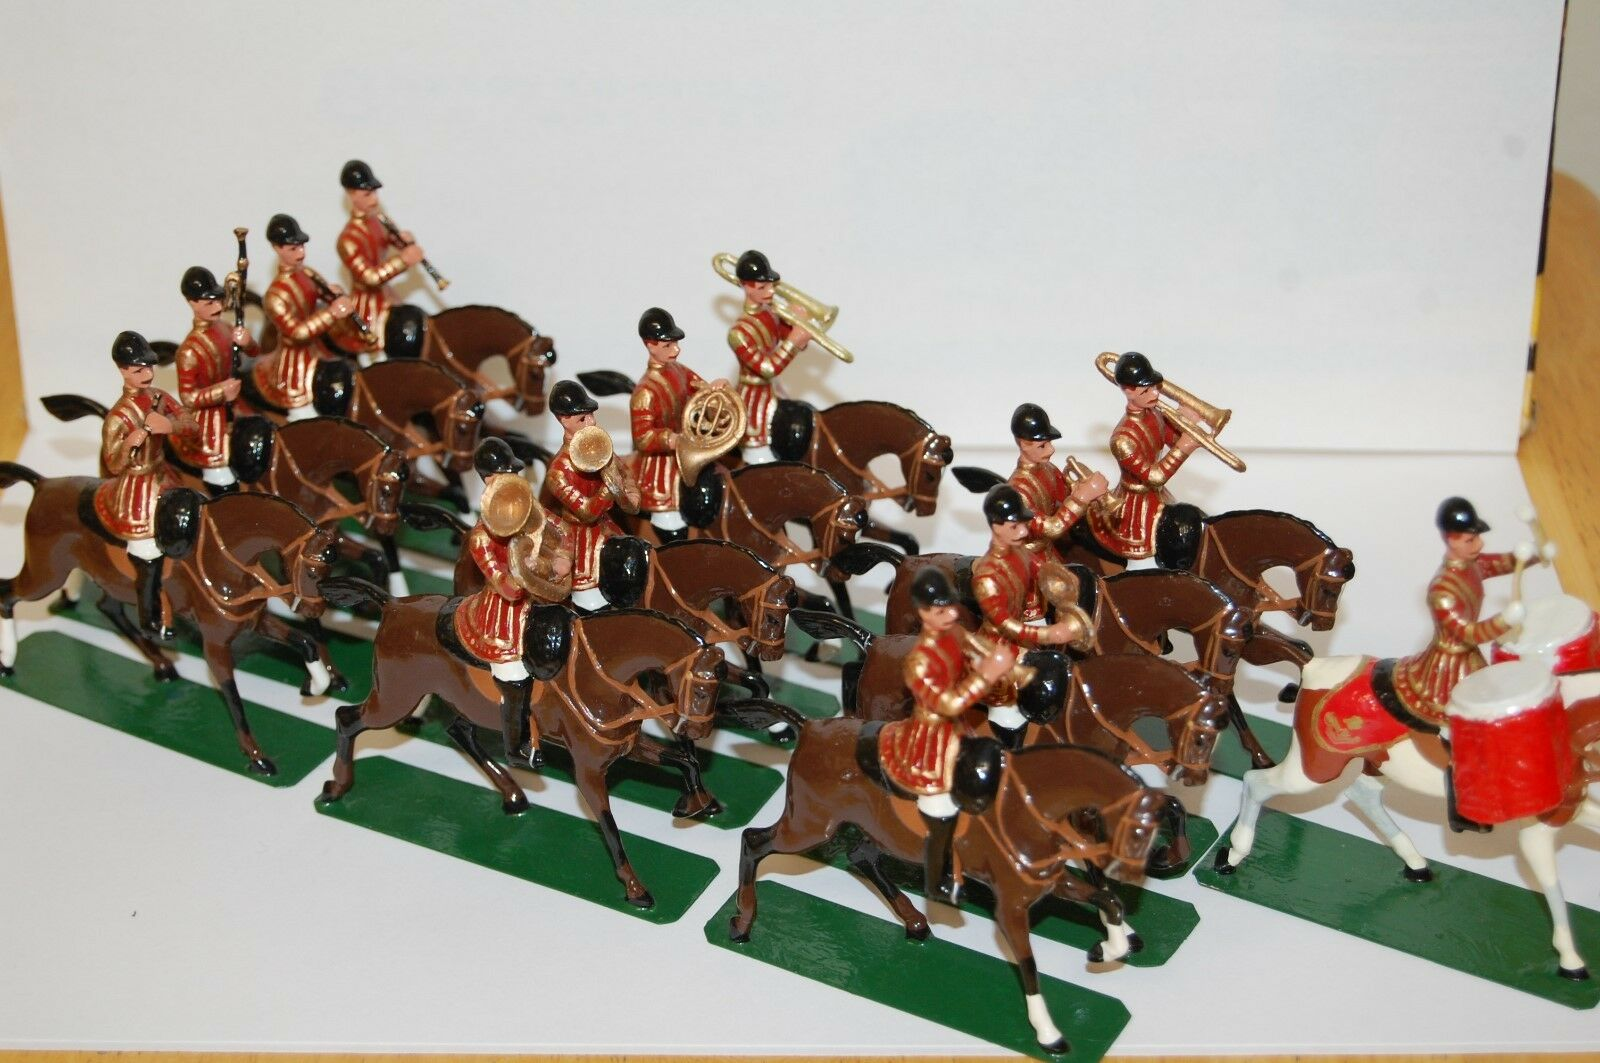 13 PEICE REPLICA MODELS 54MM LEAD MOUNTED LIFE GUARDS BAND         BRITAINS